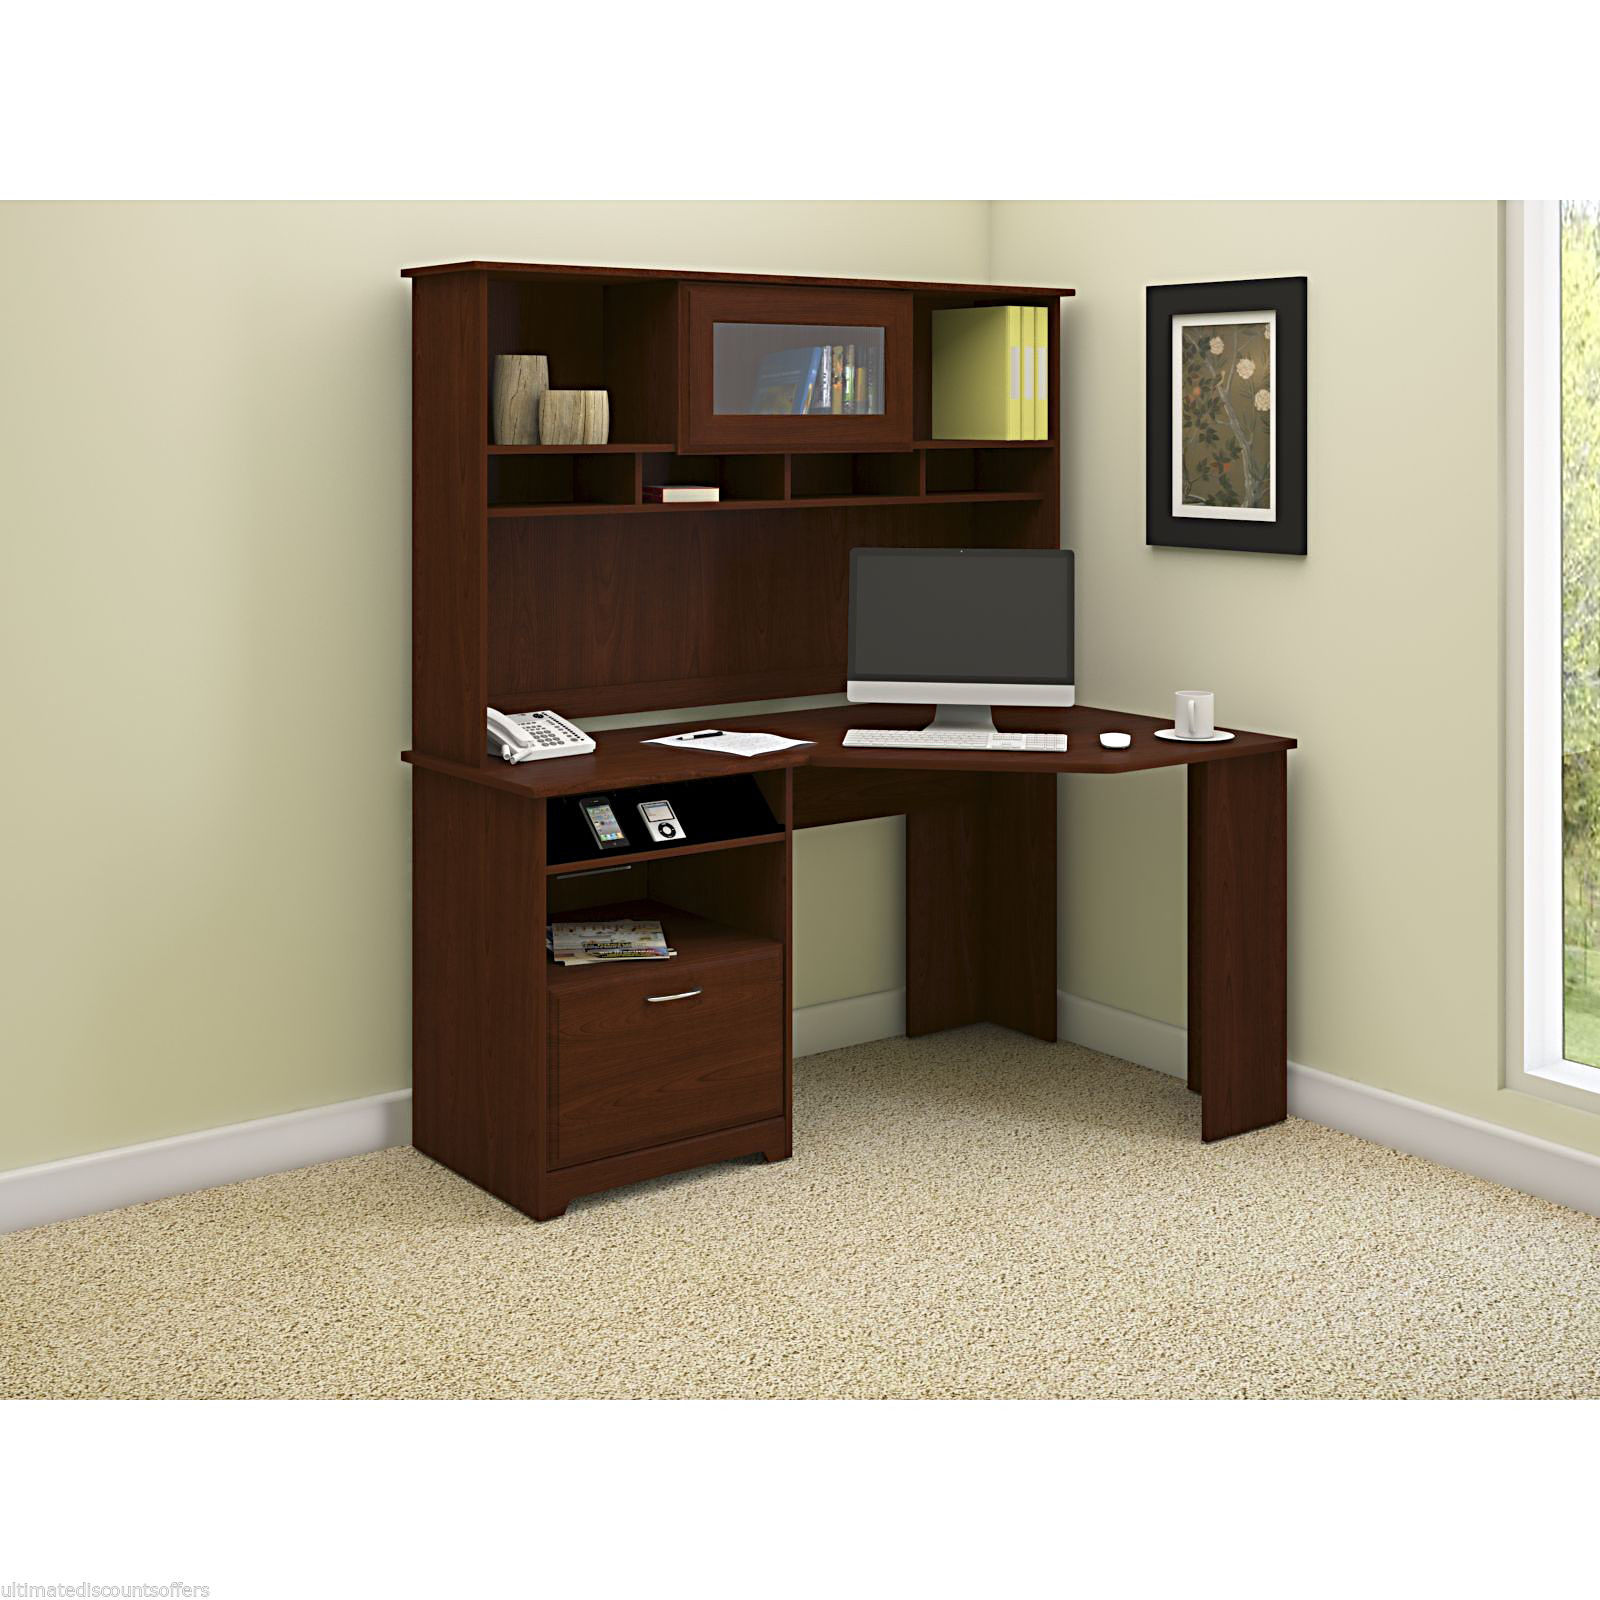 Wonderful image of  Wood Hutch Computer Business Modern Desks & Home Office Furniture with #332013 color and 1600x1600 pixels